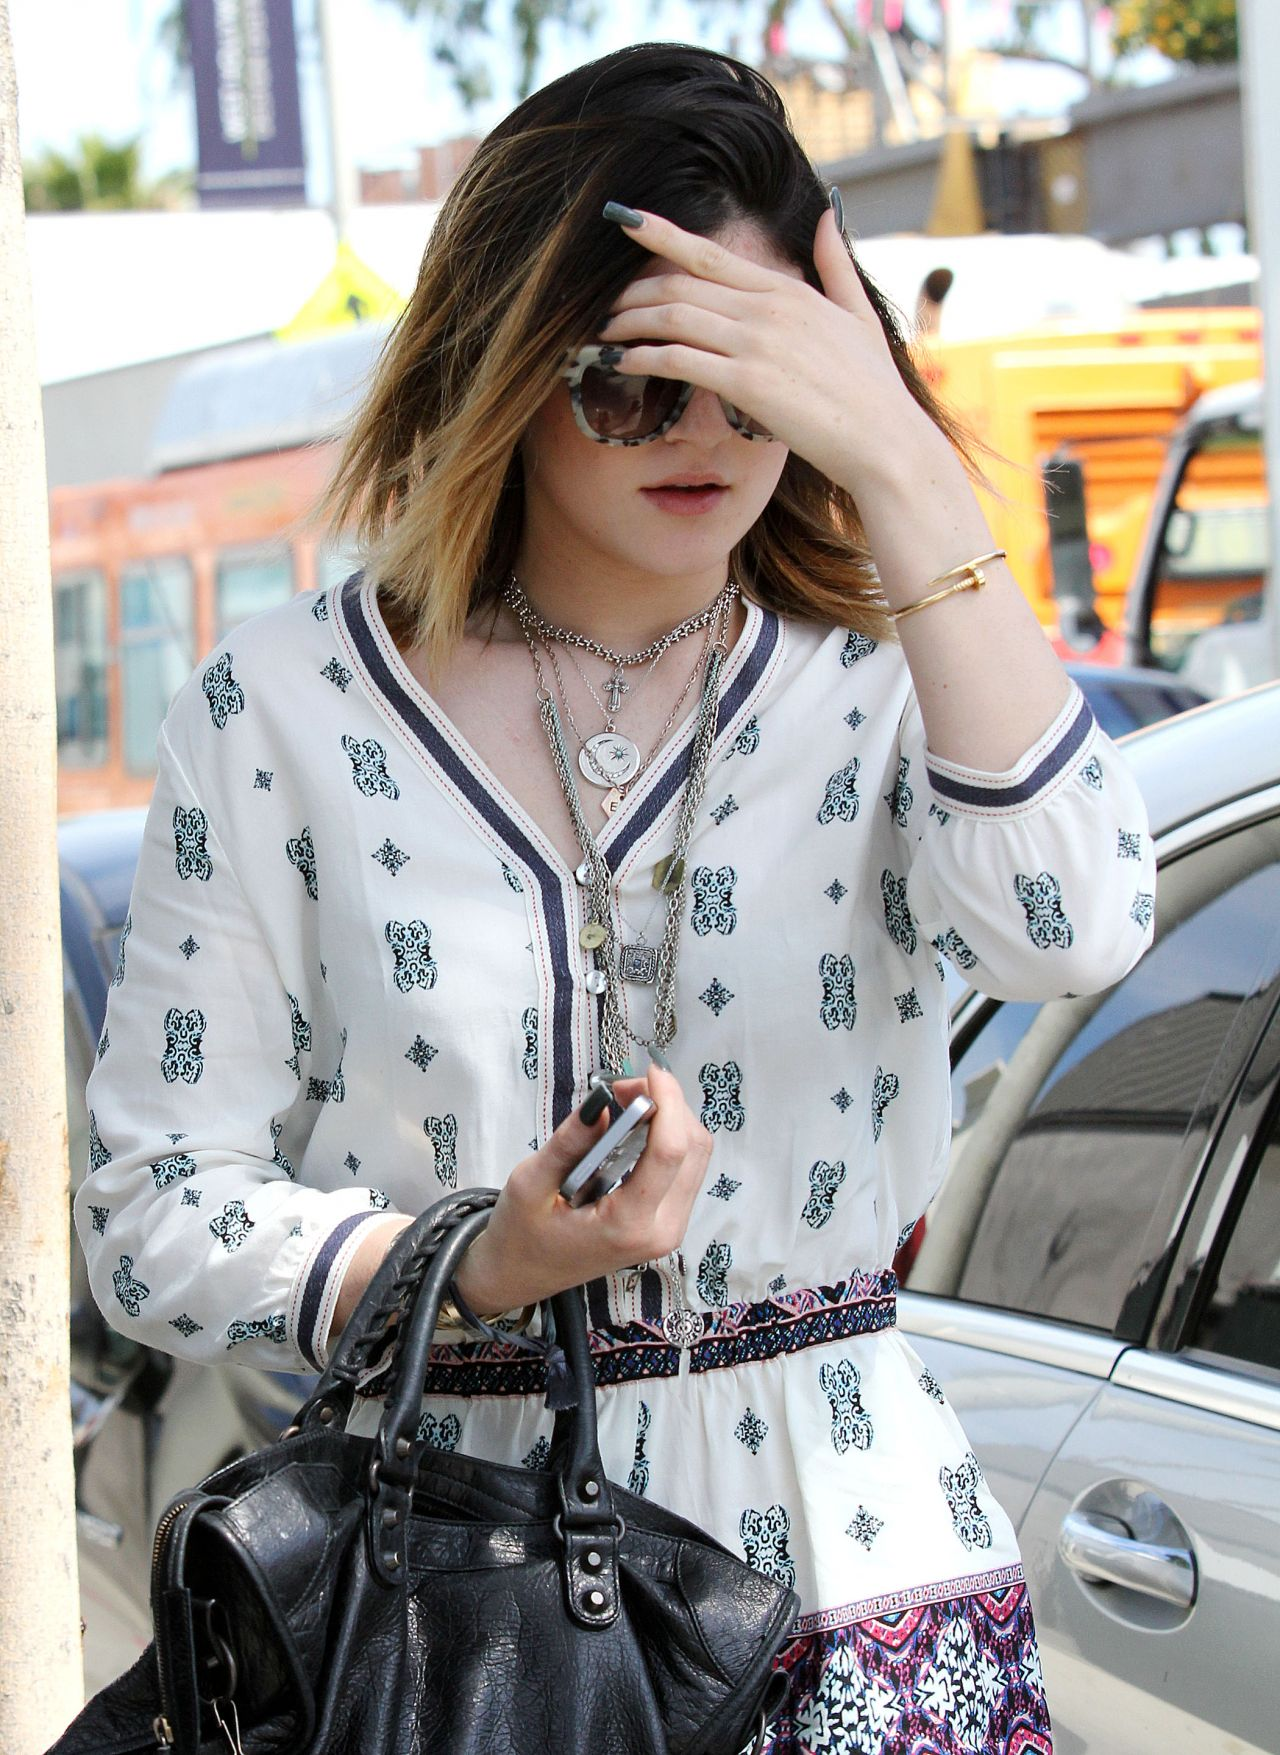 Kylie Jenner Street Style - Out in Los Angeles - April 2014